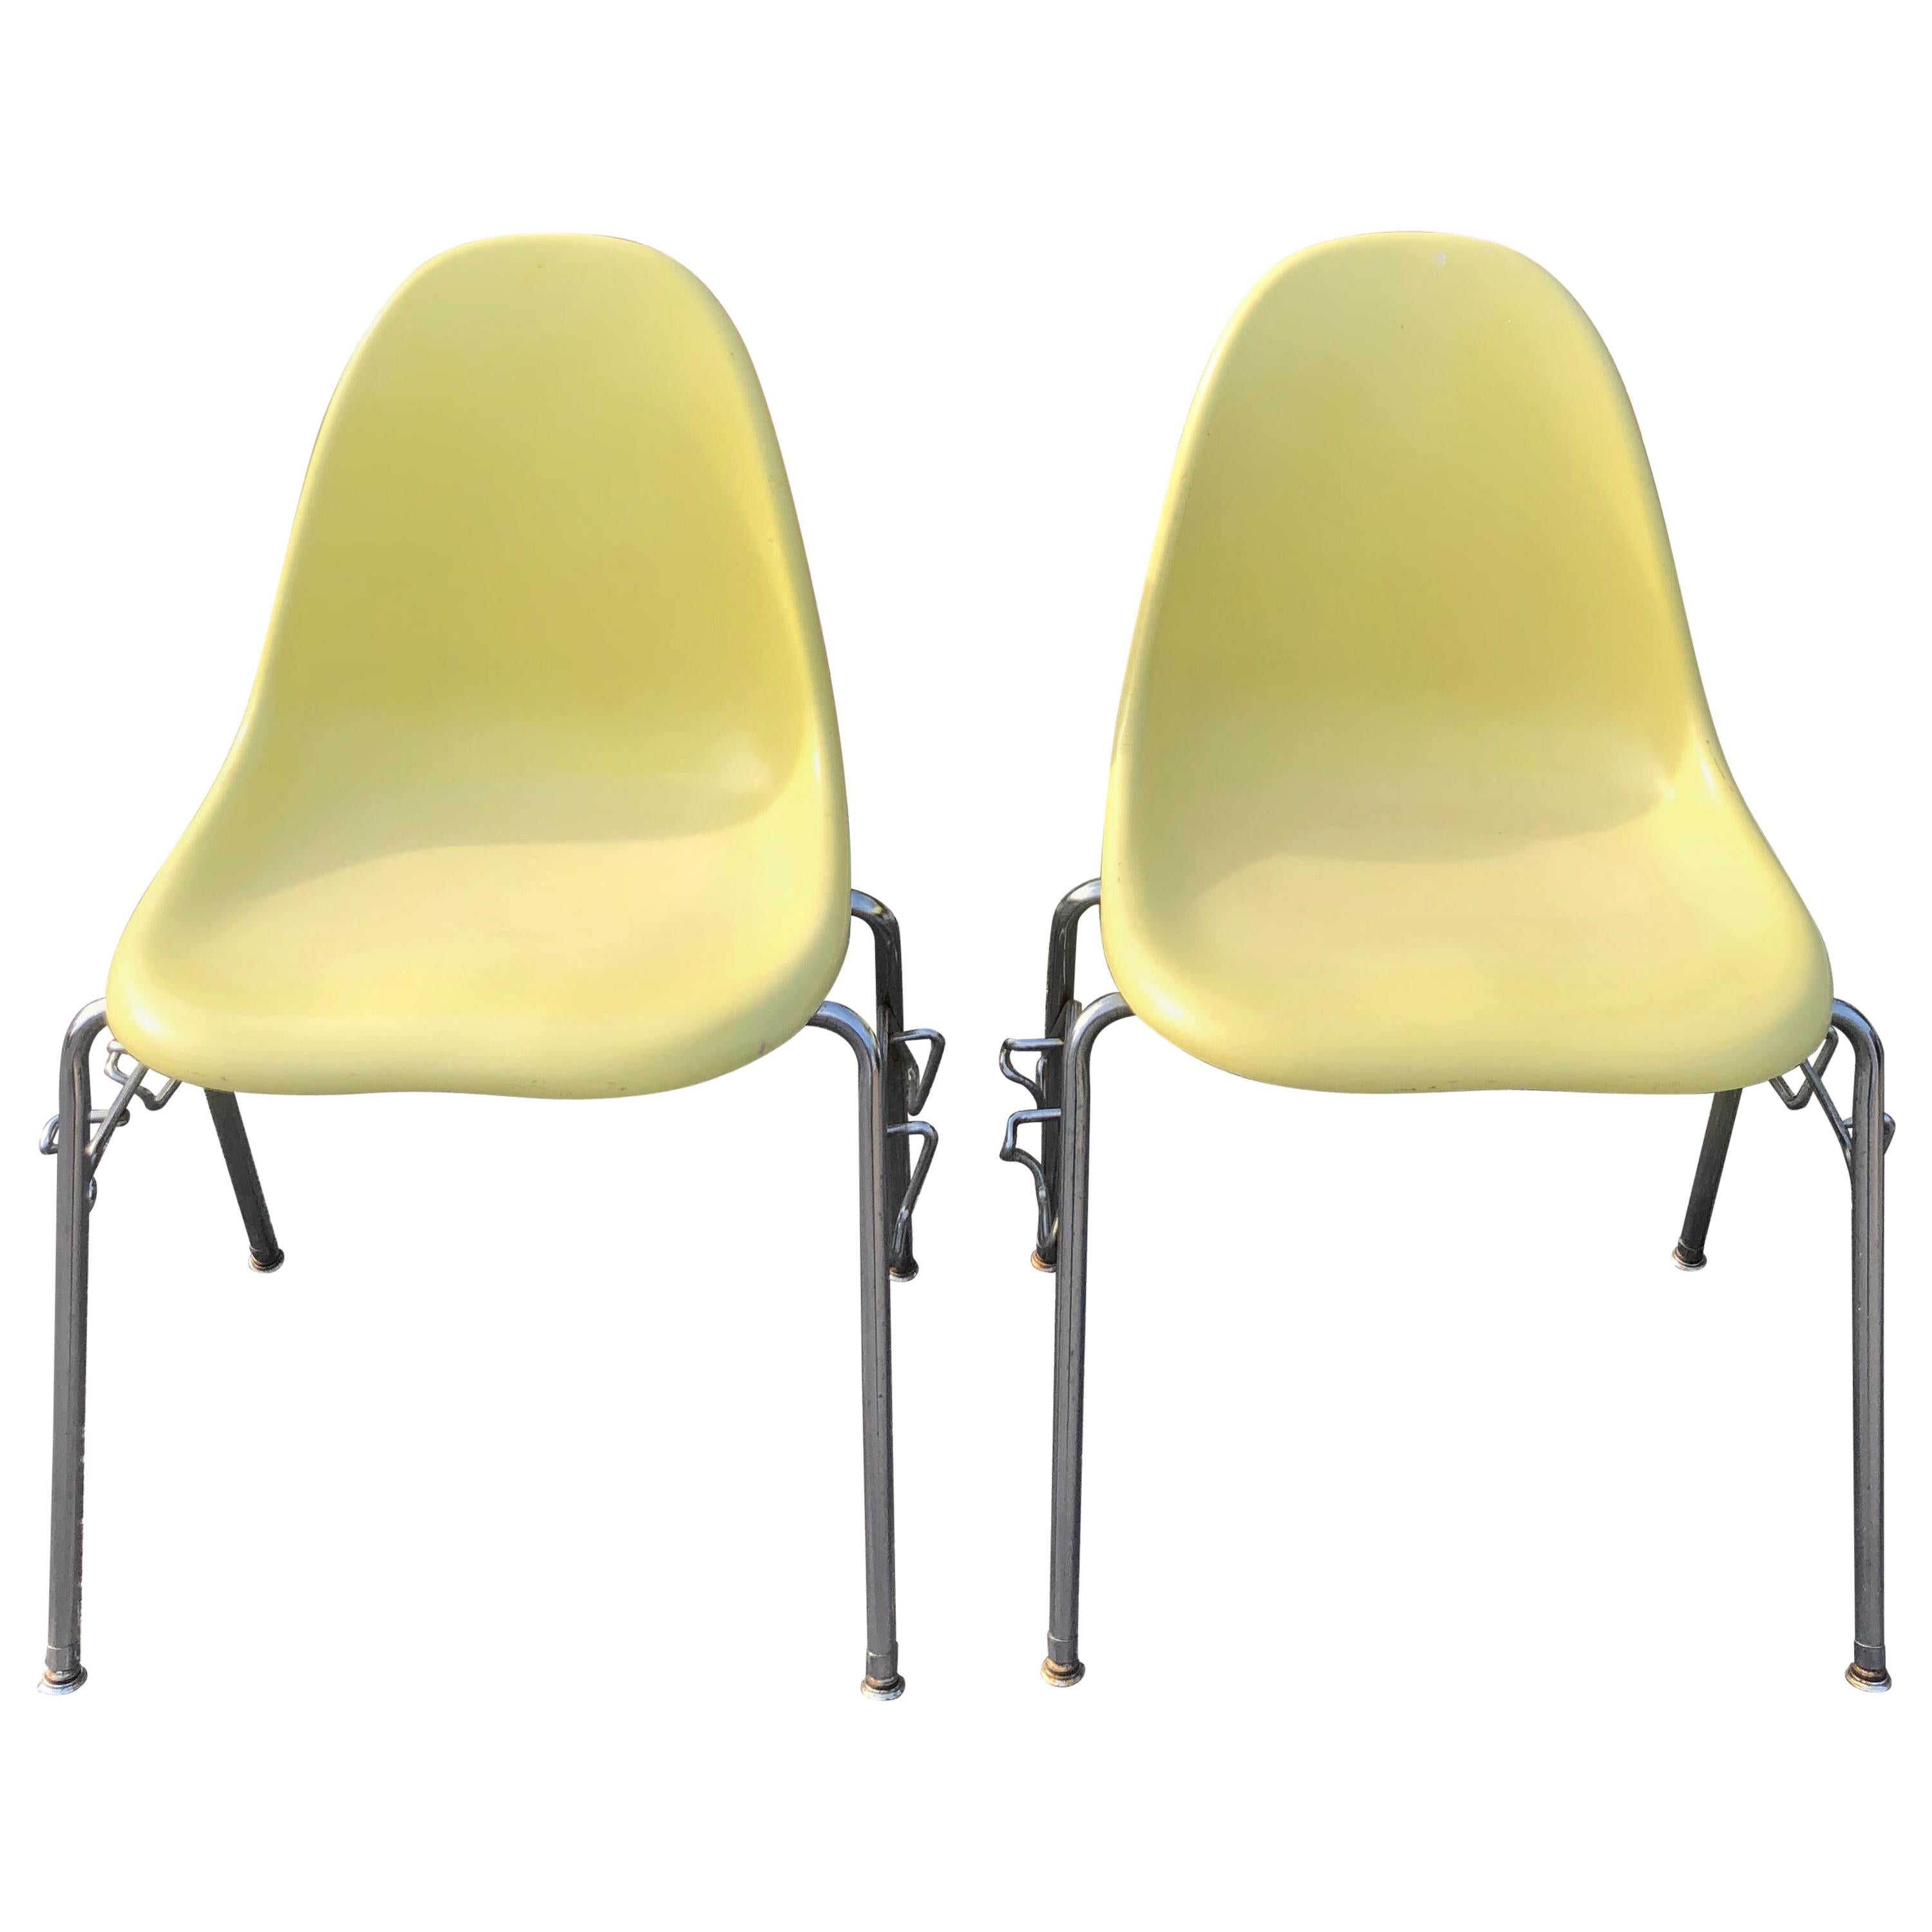 Pair of Eames Style Yellow Fiberglass Shell Chairs by Techfab